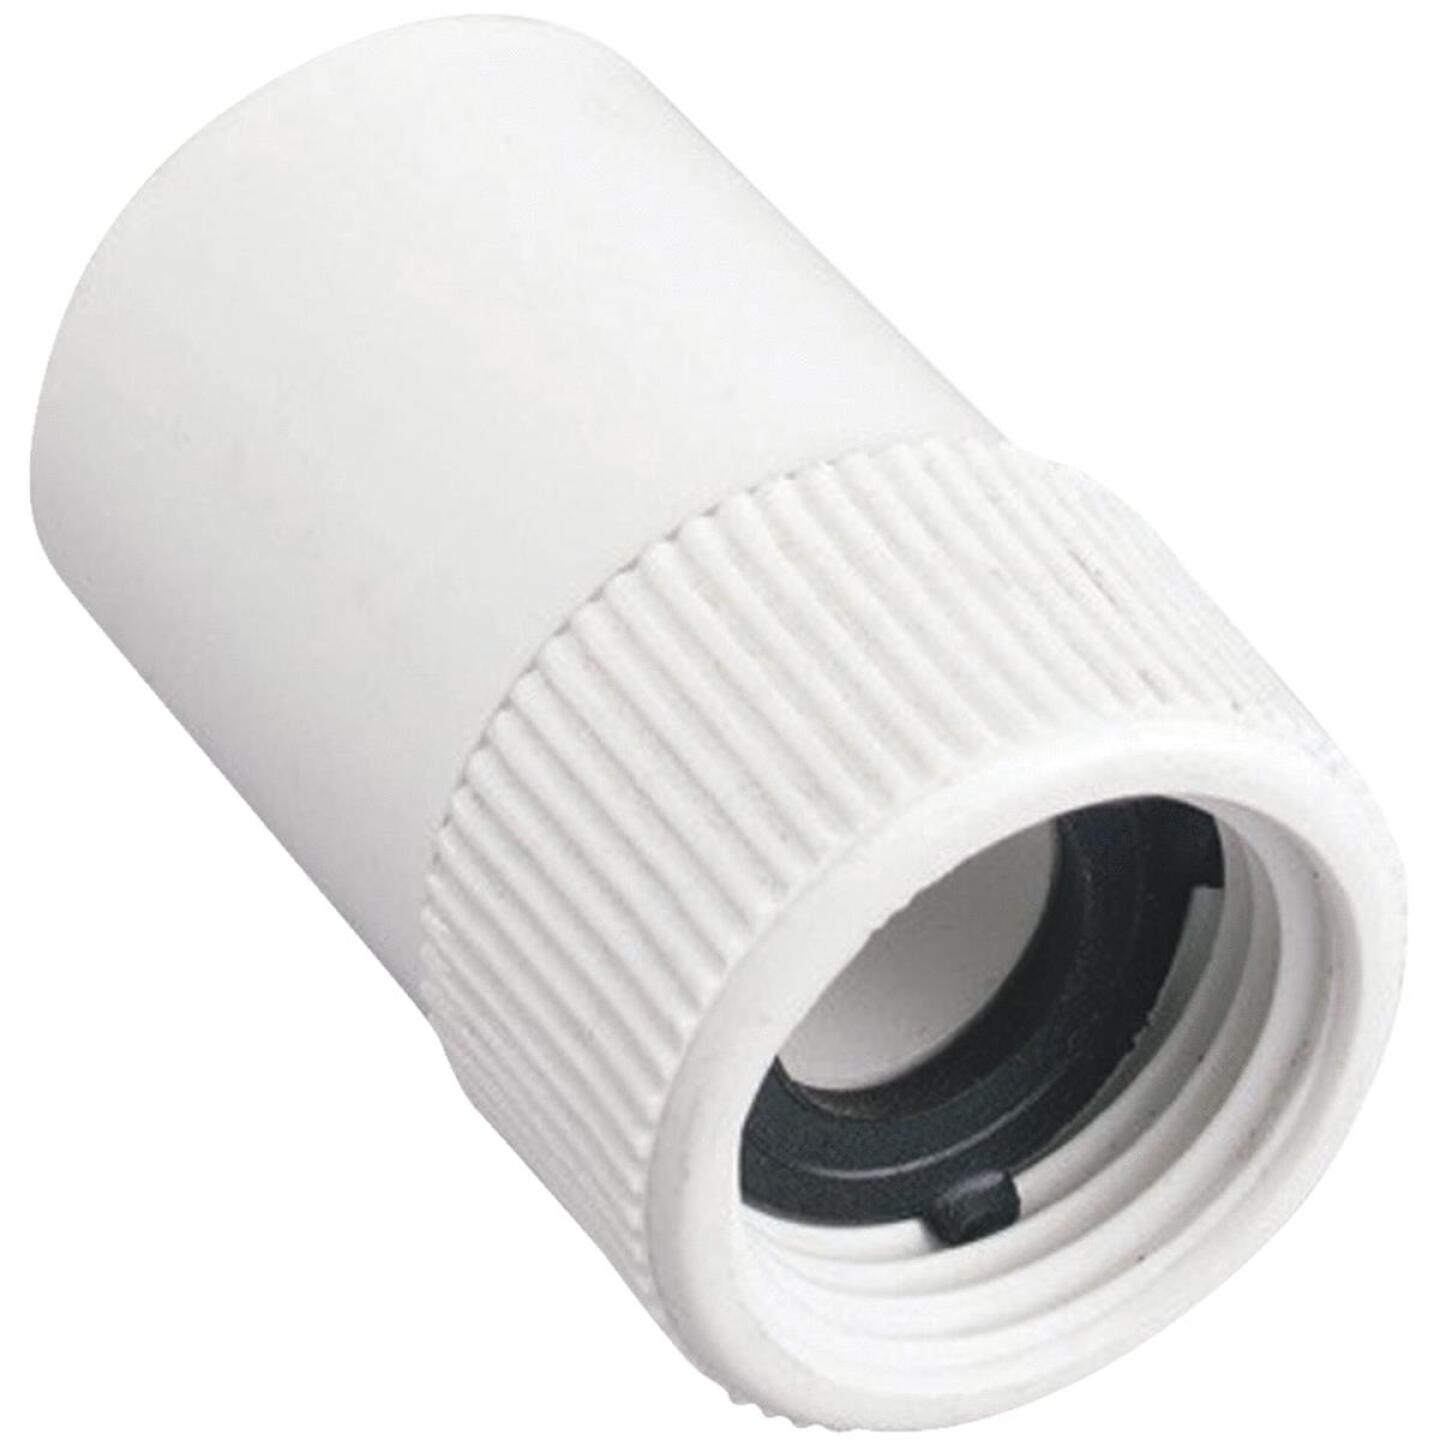 Orbit 3/4 In. FHT x 3/4 In. Slip Swivel PVC Hose Adapter Image 1